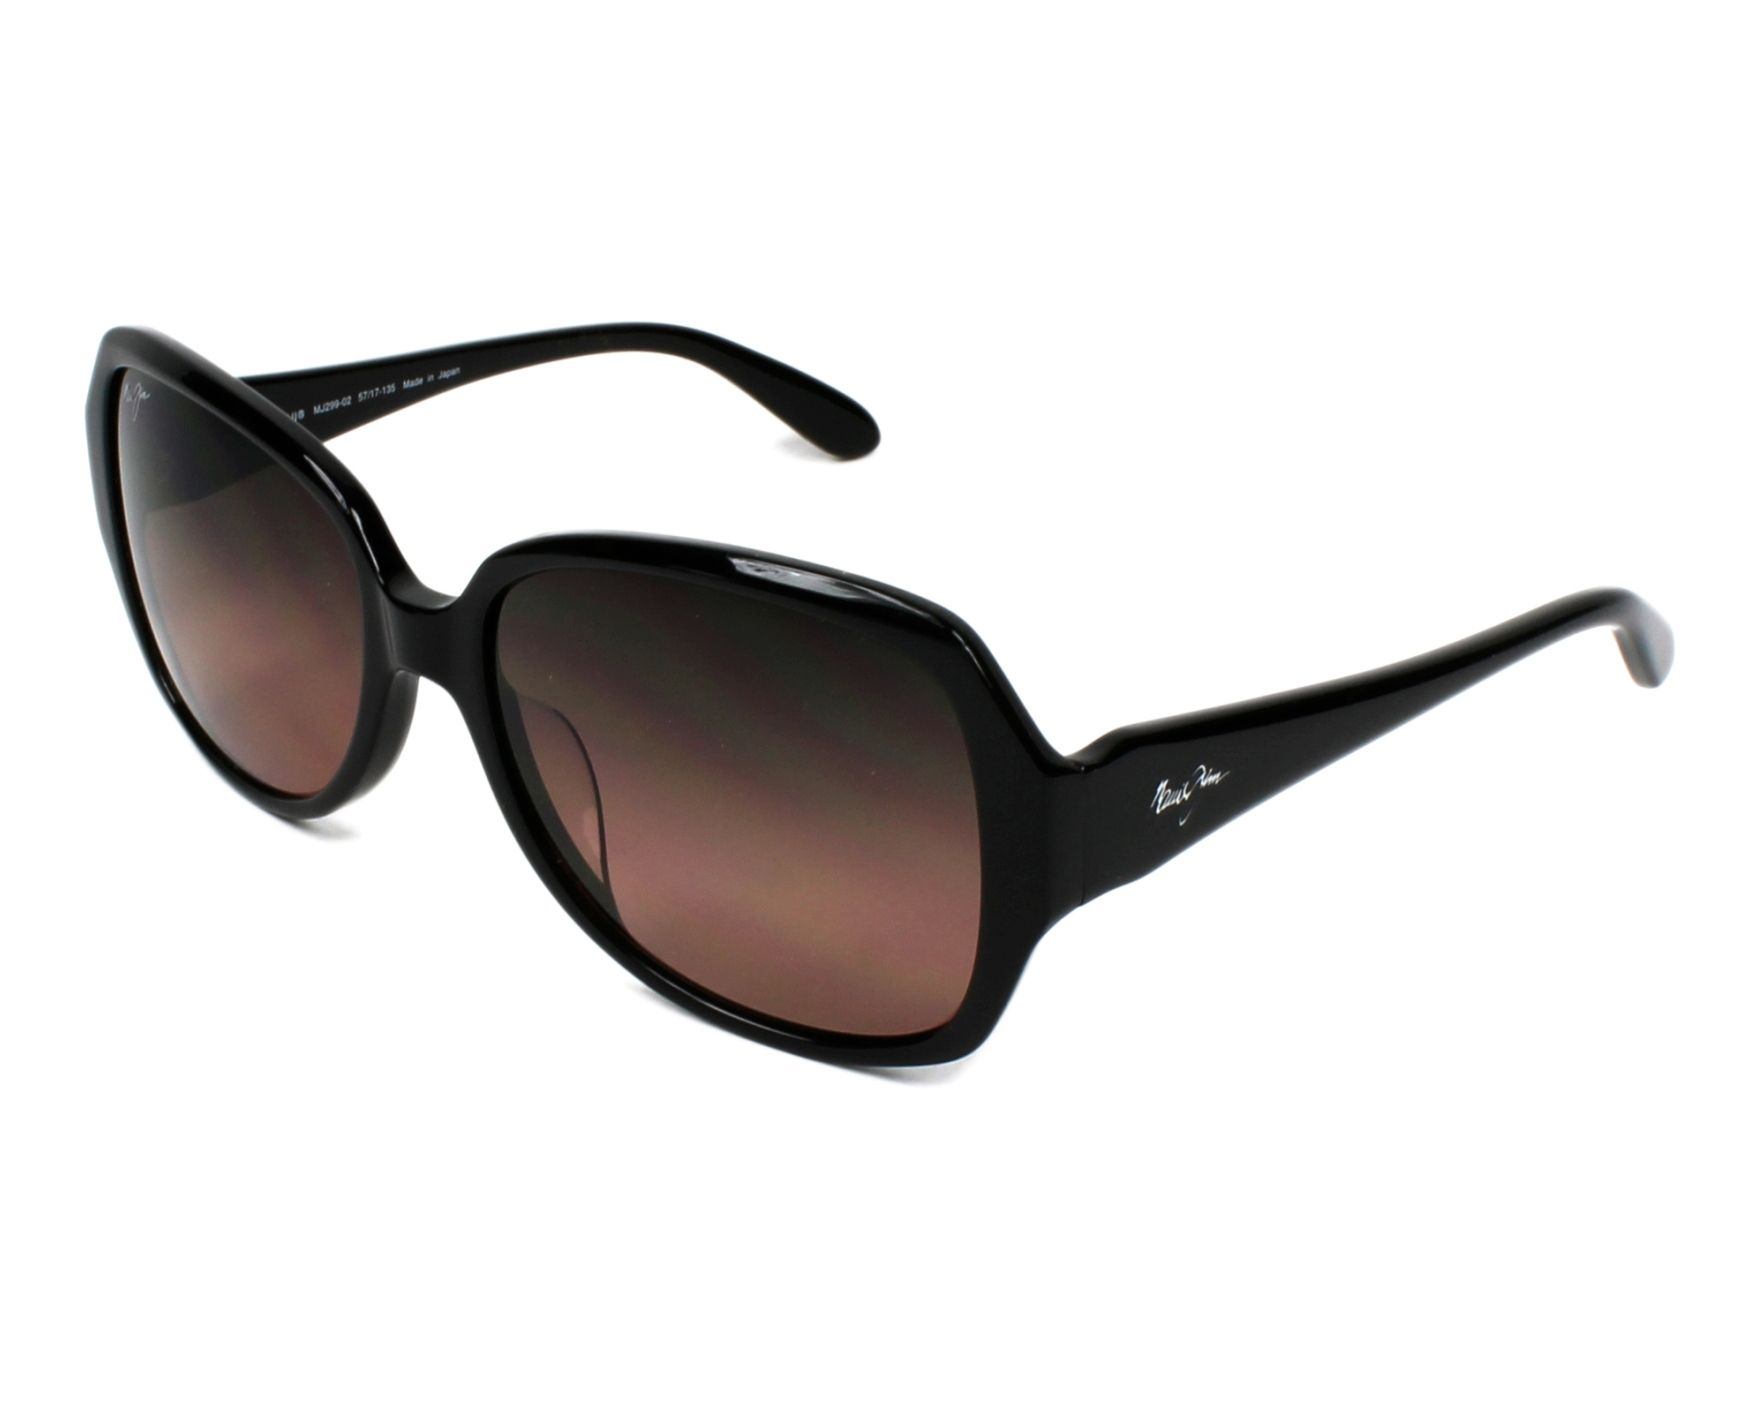 Maui Jim Rs299/02 XkU8Chw1